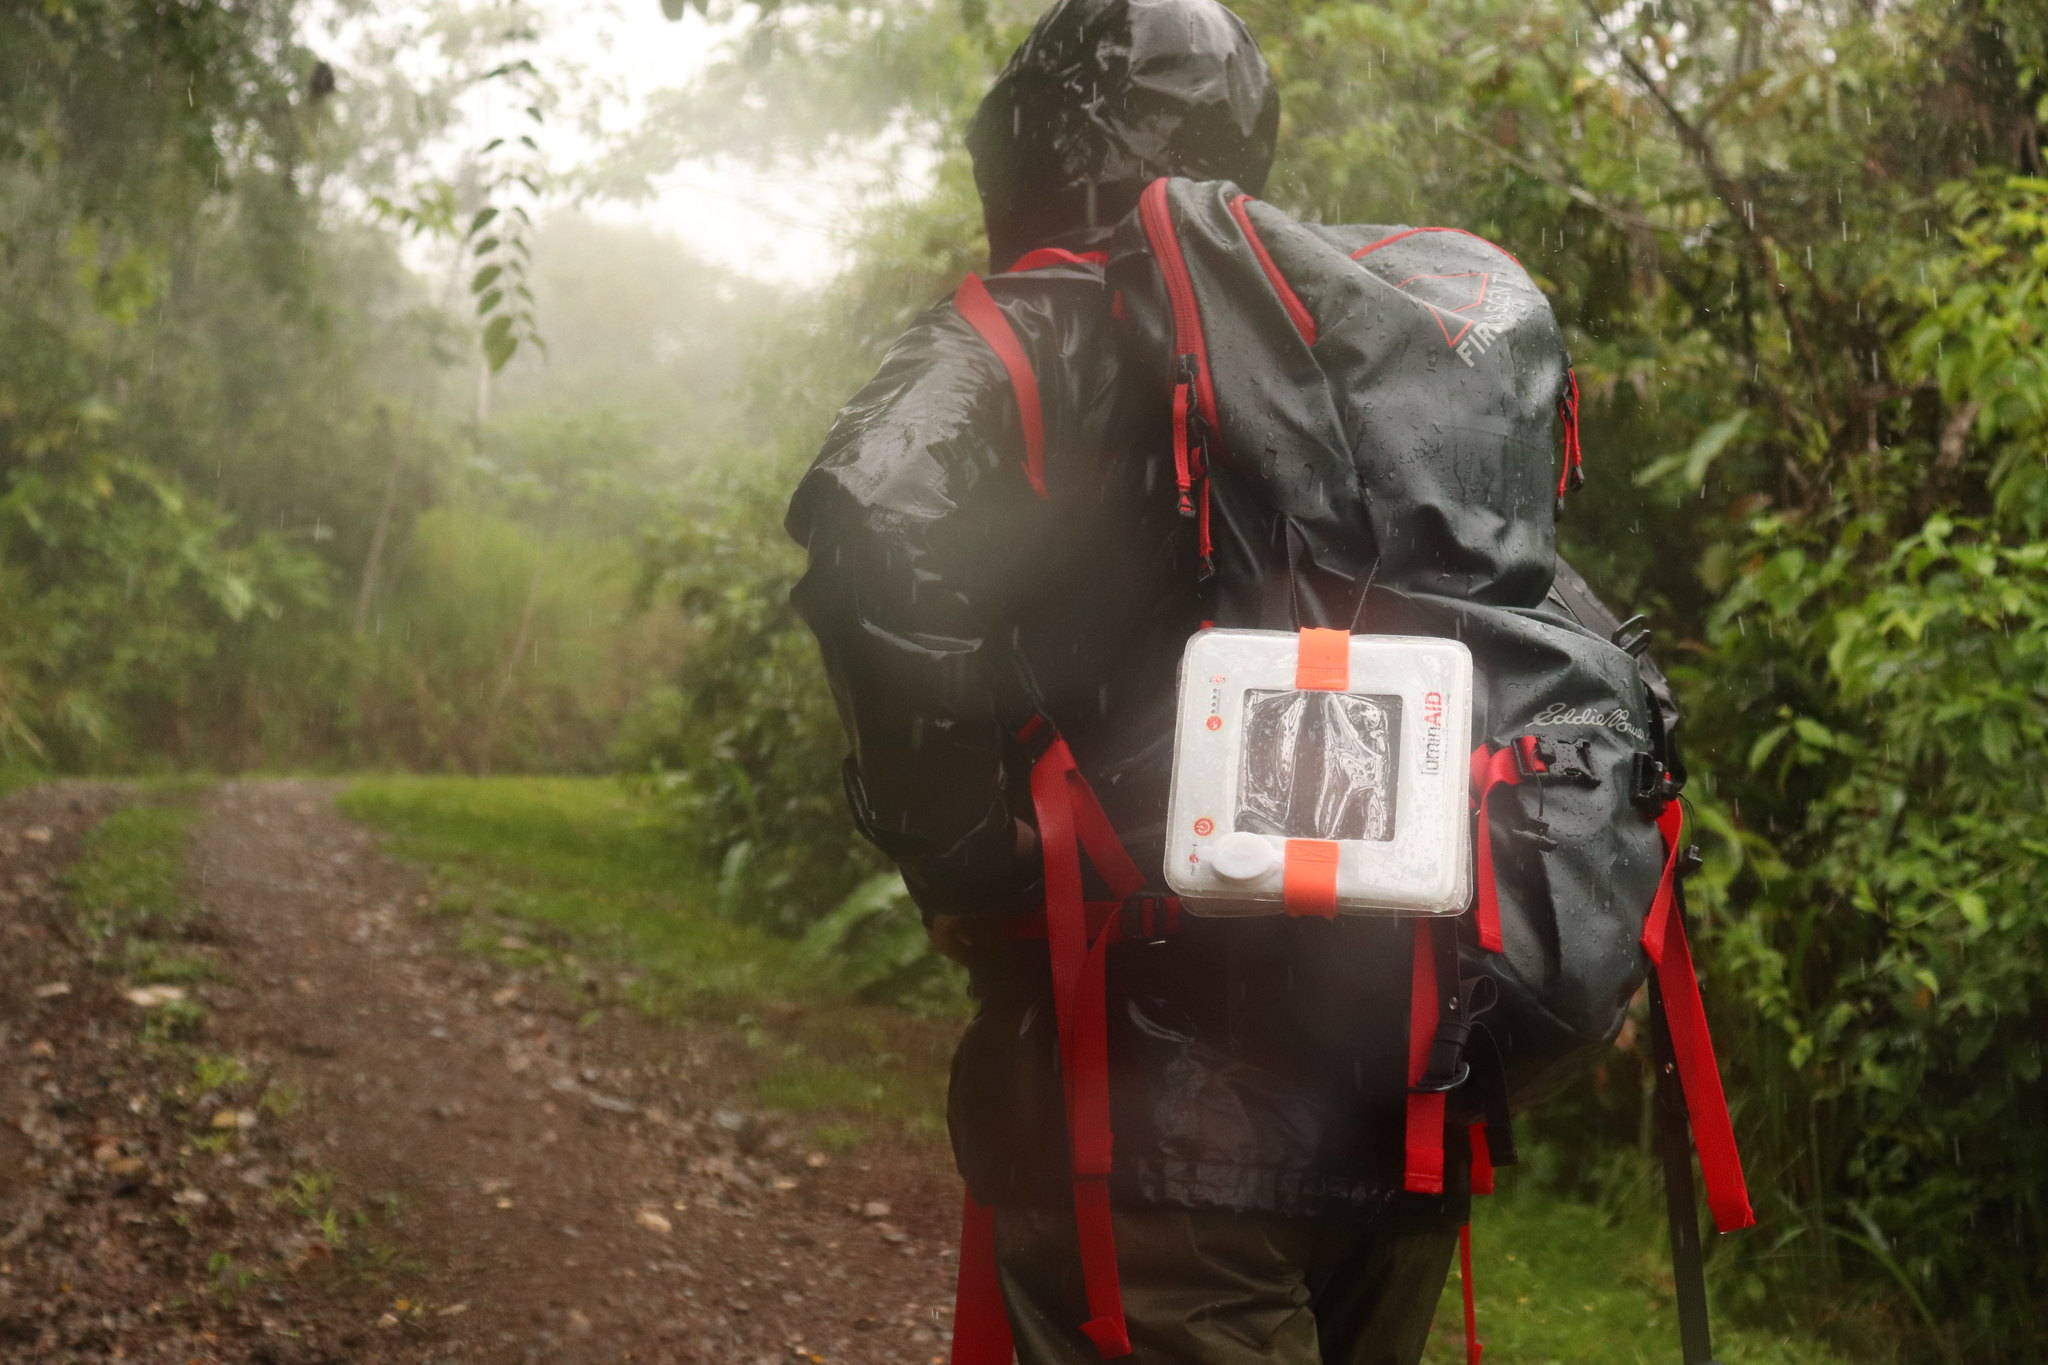 Man backpacking in rain with light on backpack.